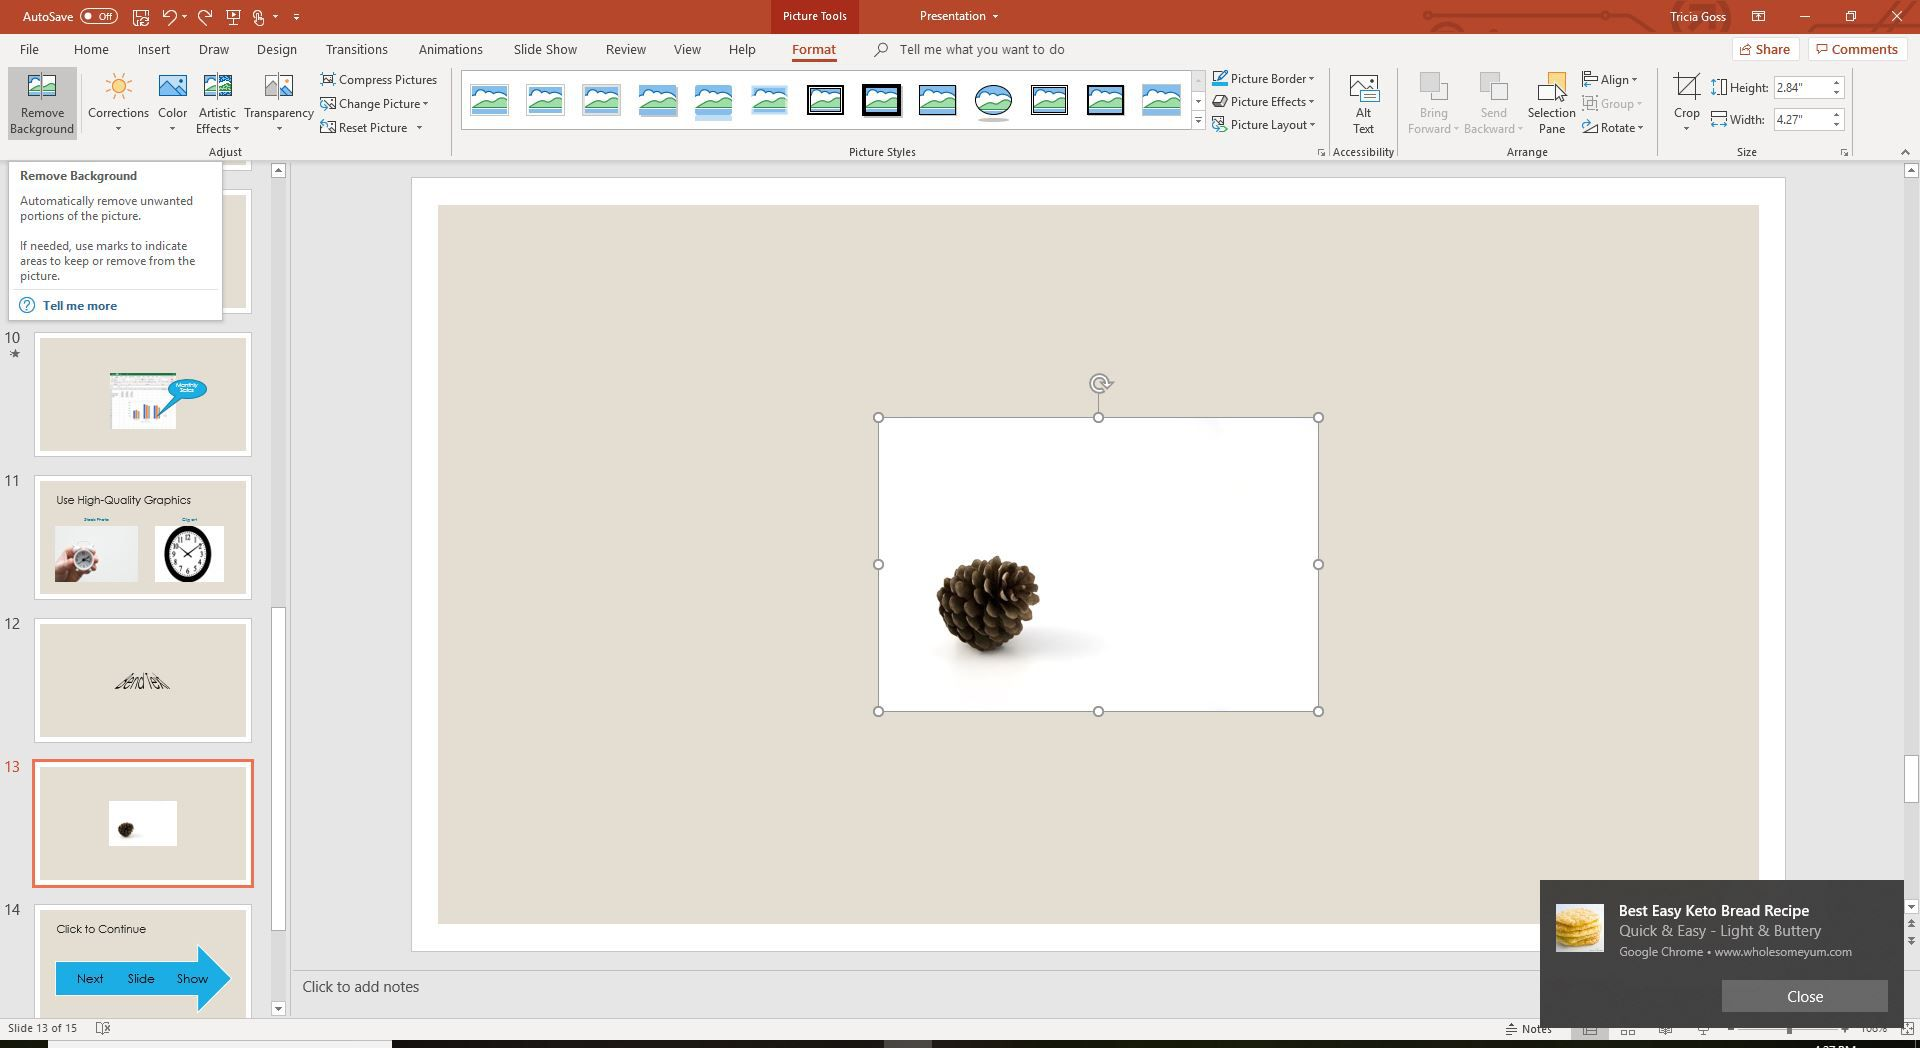 How To Make An Image Background Transparent In Powerpoint